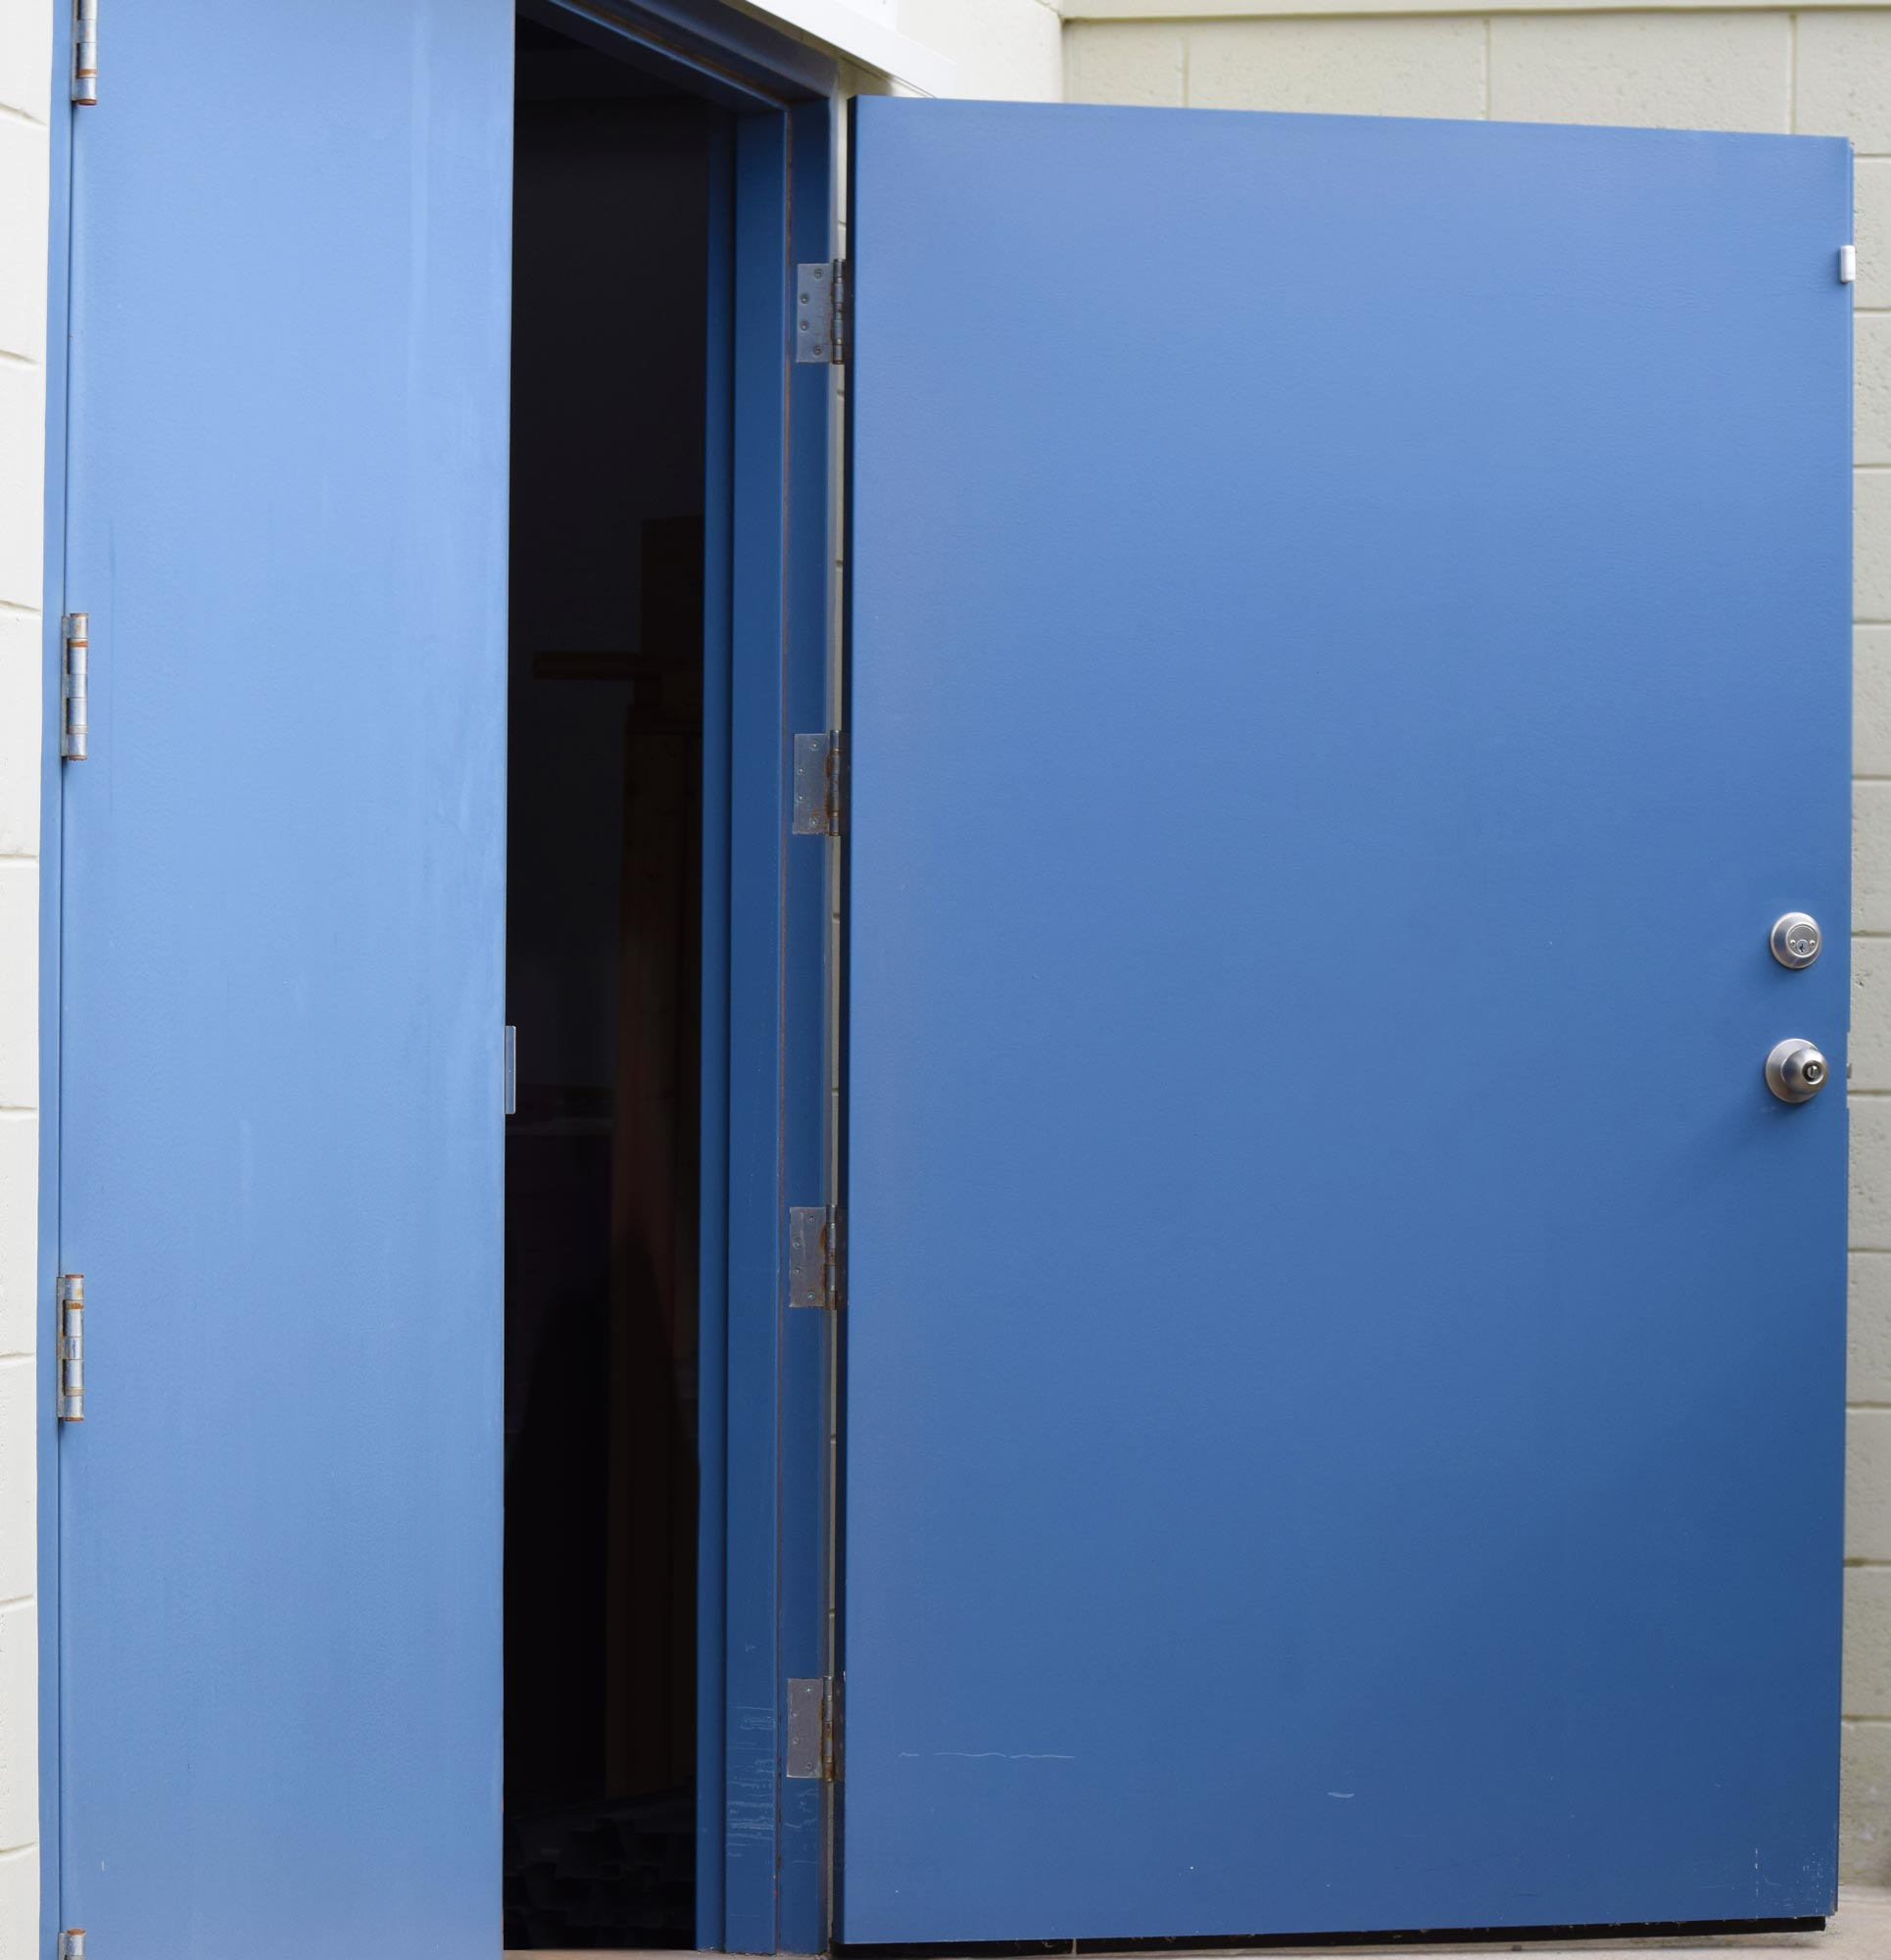 2000 #245AA7 Custom Made Steel Doors Supplied By LAMCO LAMCO Industries Ltd. In  save image Custom Made Steel Doors 46671930